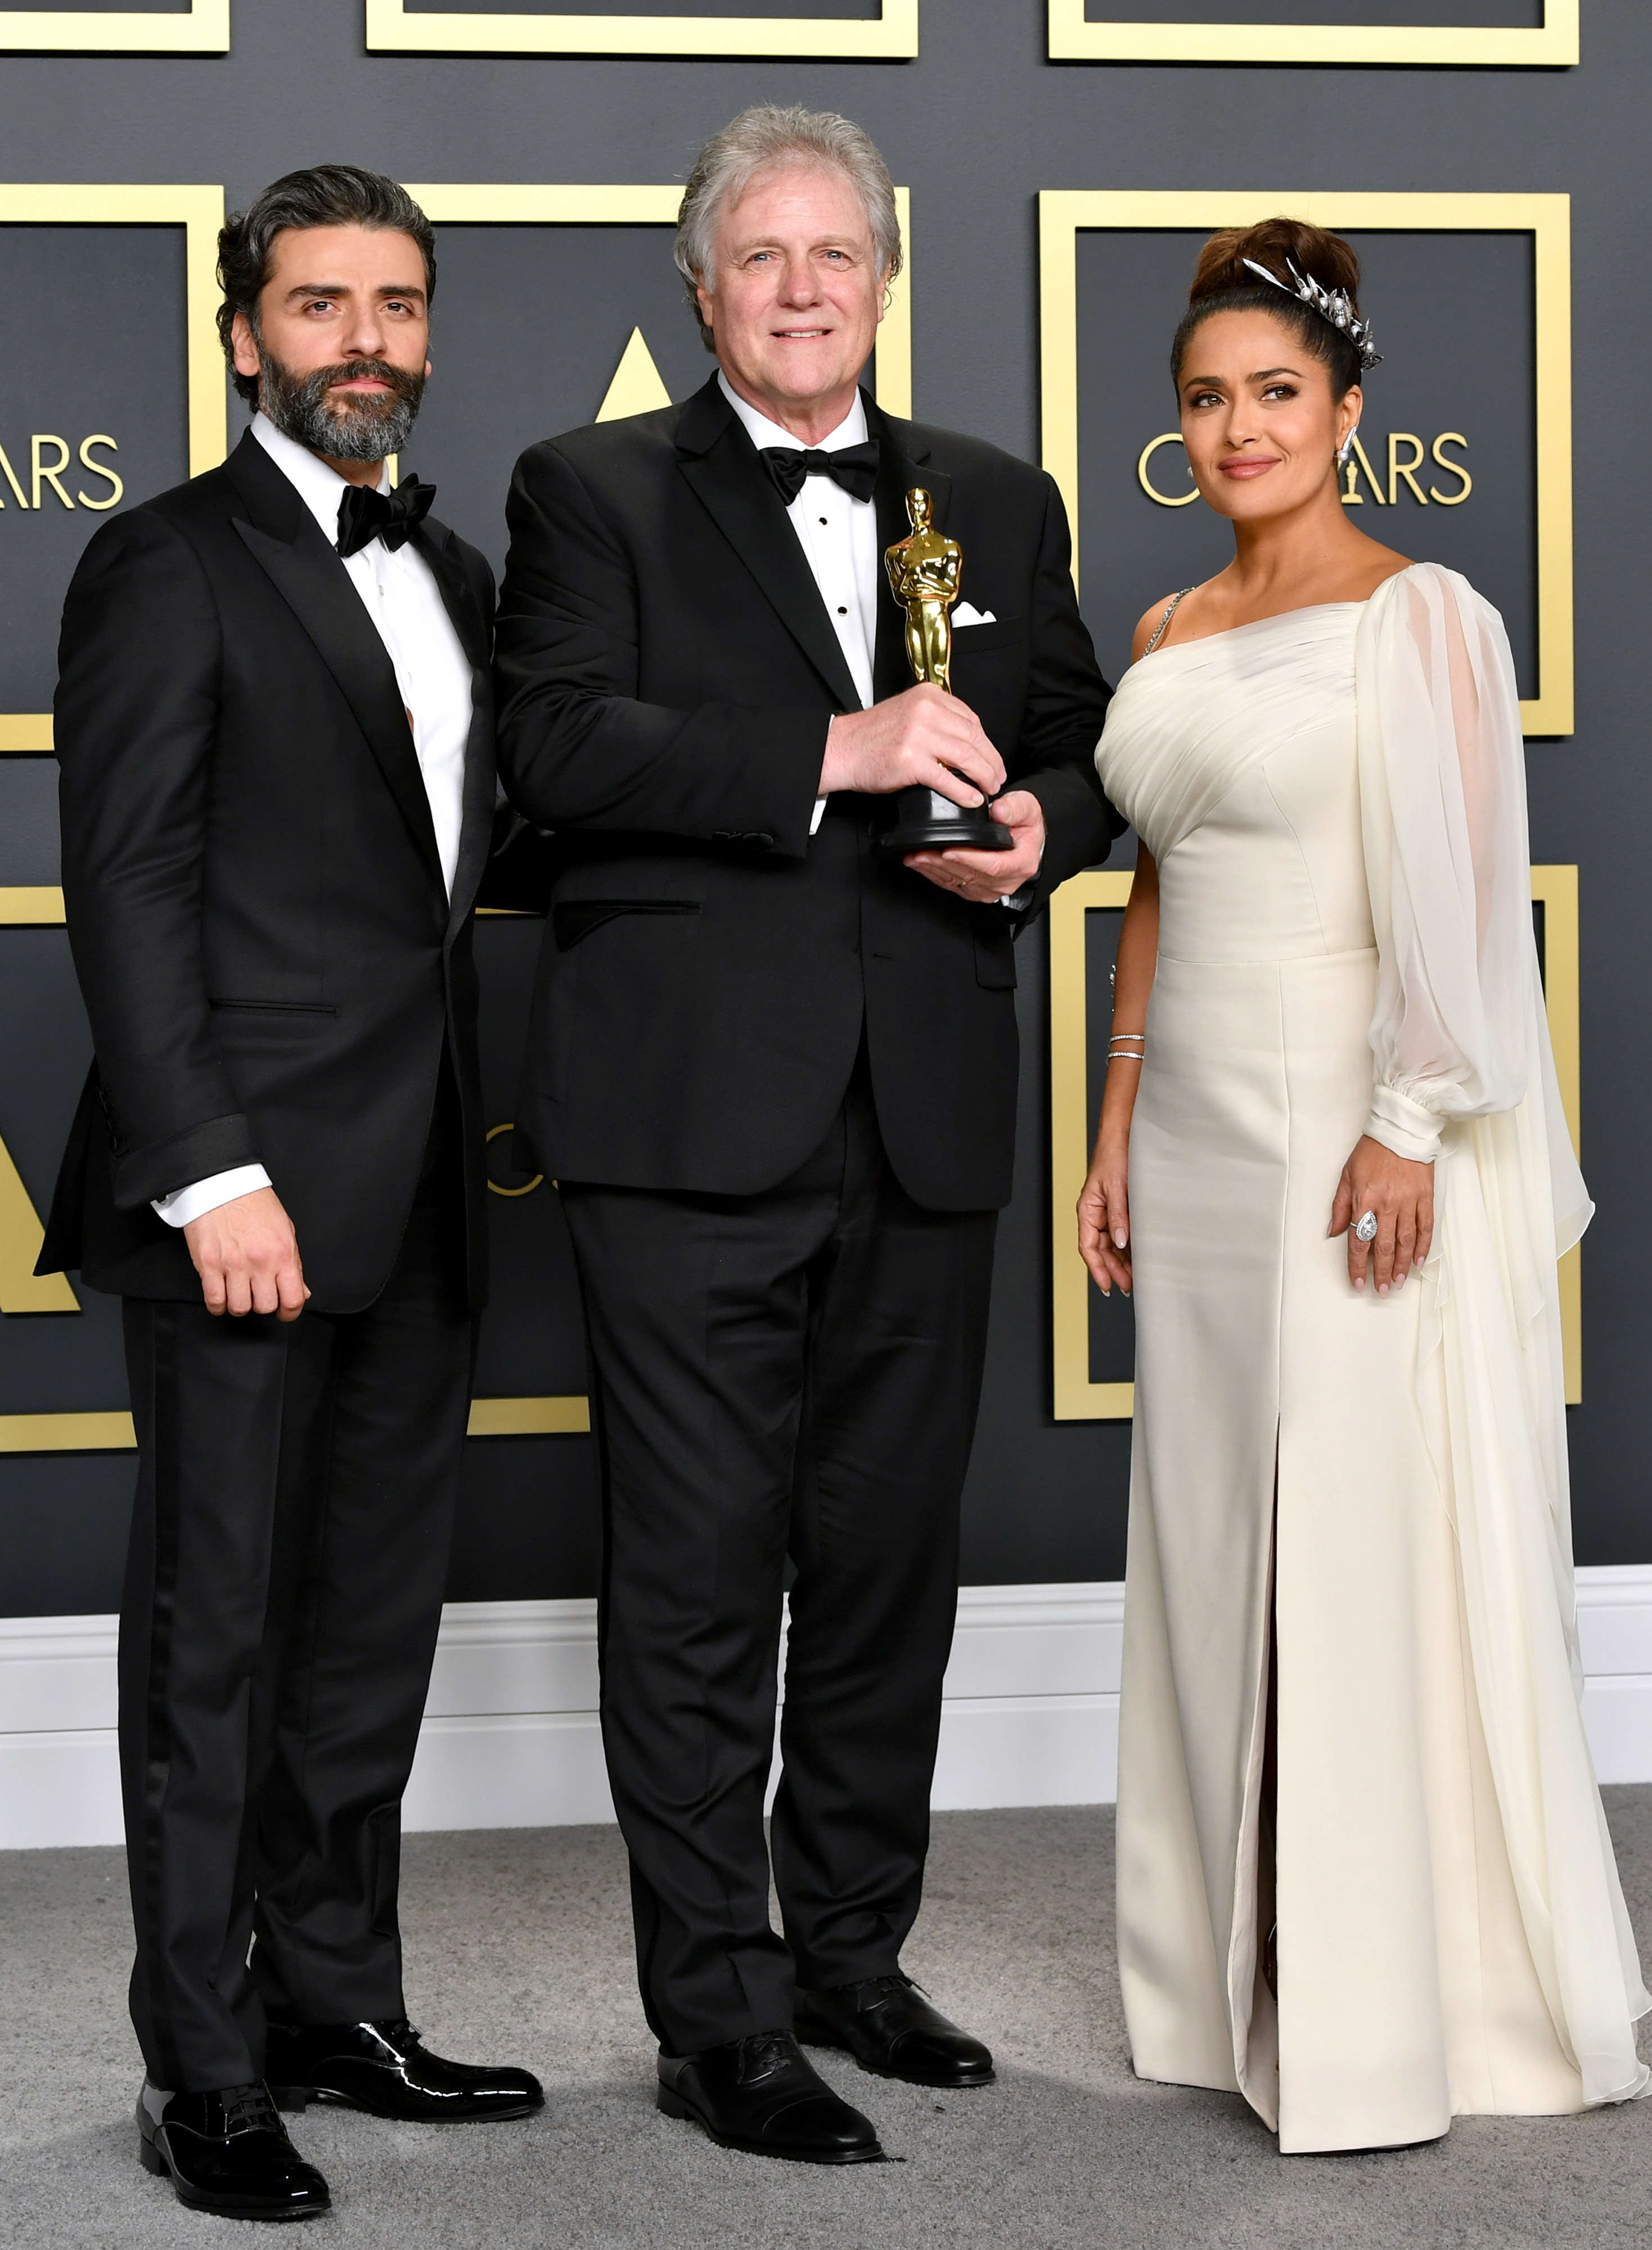 """Sound engineer Donald Sylvester, winner of the Sound Editing award for """"Ford v Ferrar,"""" poses with Oscar Isaac (L) and Salma Hayek (R) in the press room during the 92nd Annual Academy Awards at Hollywood and Highland on February 09, 2020 in Hollywood, California. (Photo by Amy Sussman/Getty Images)"""